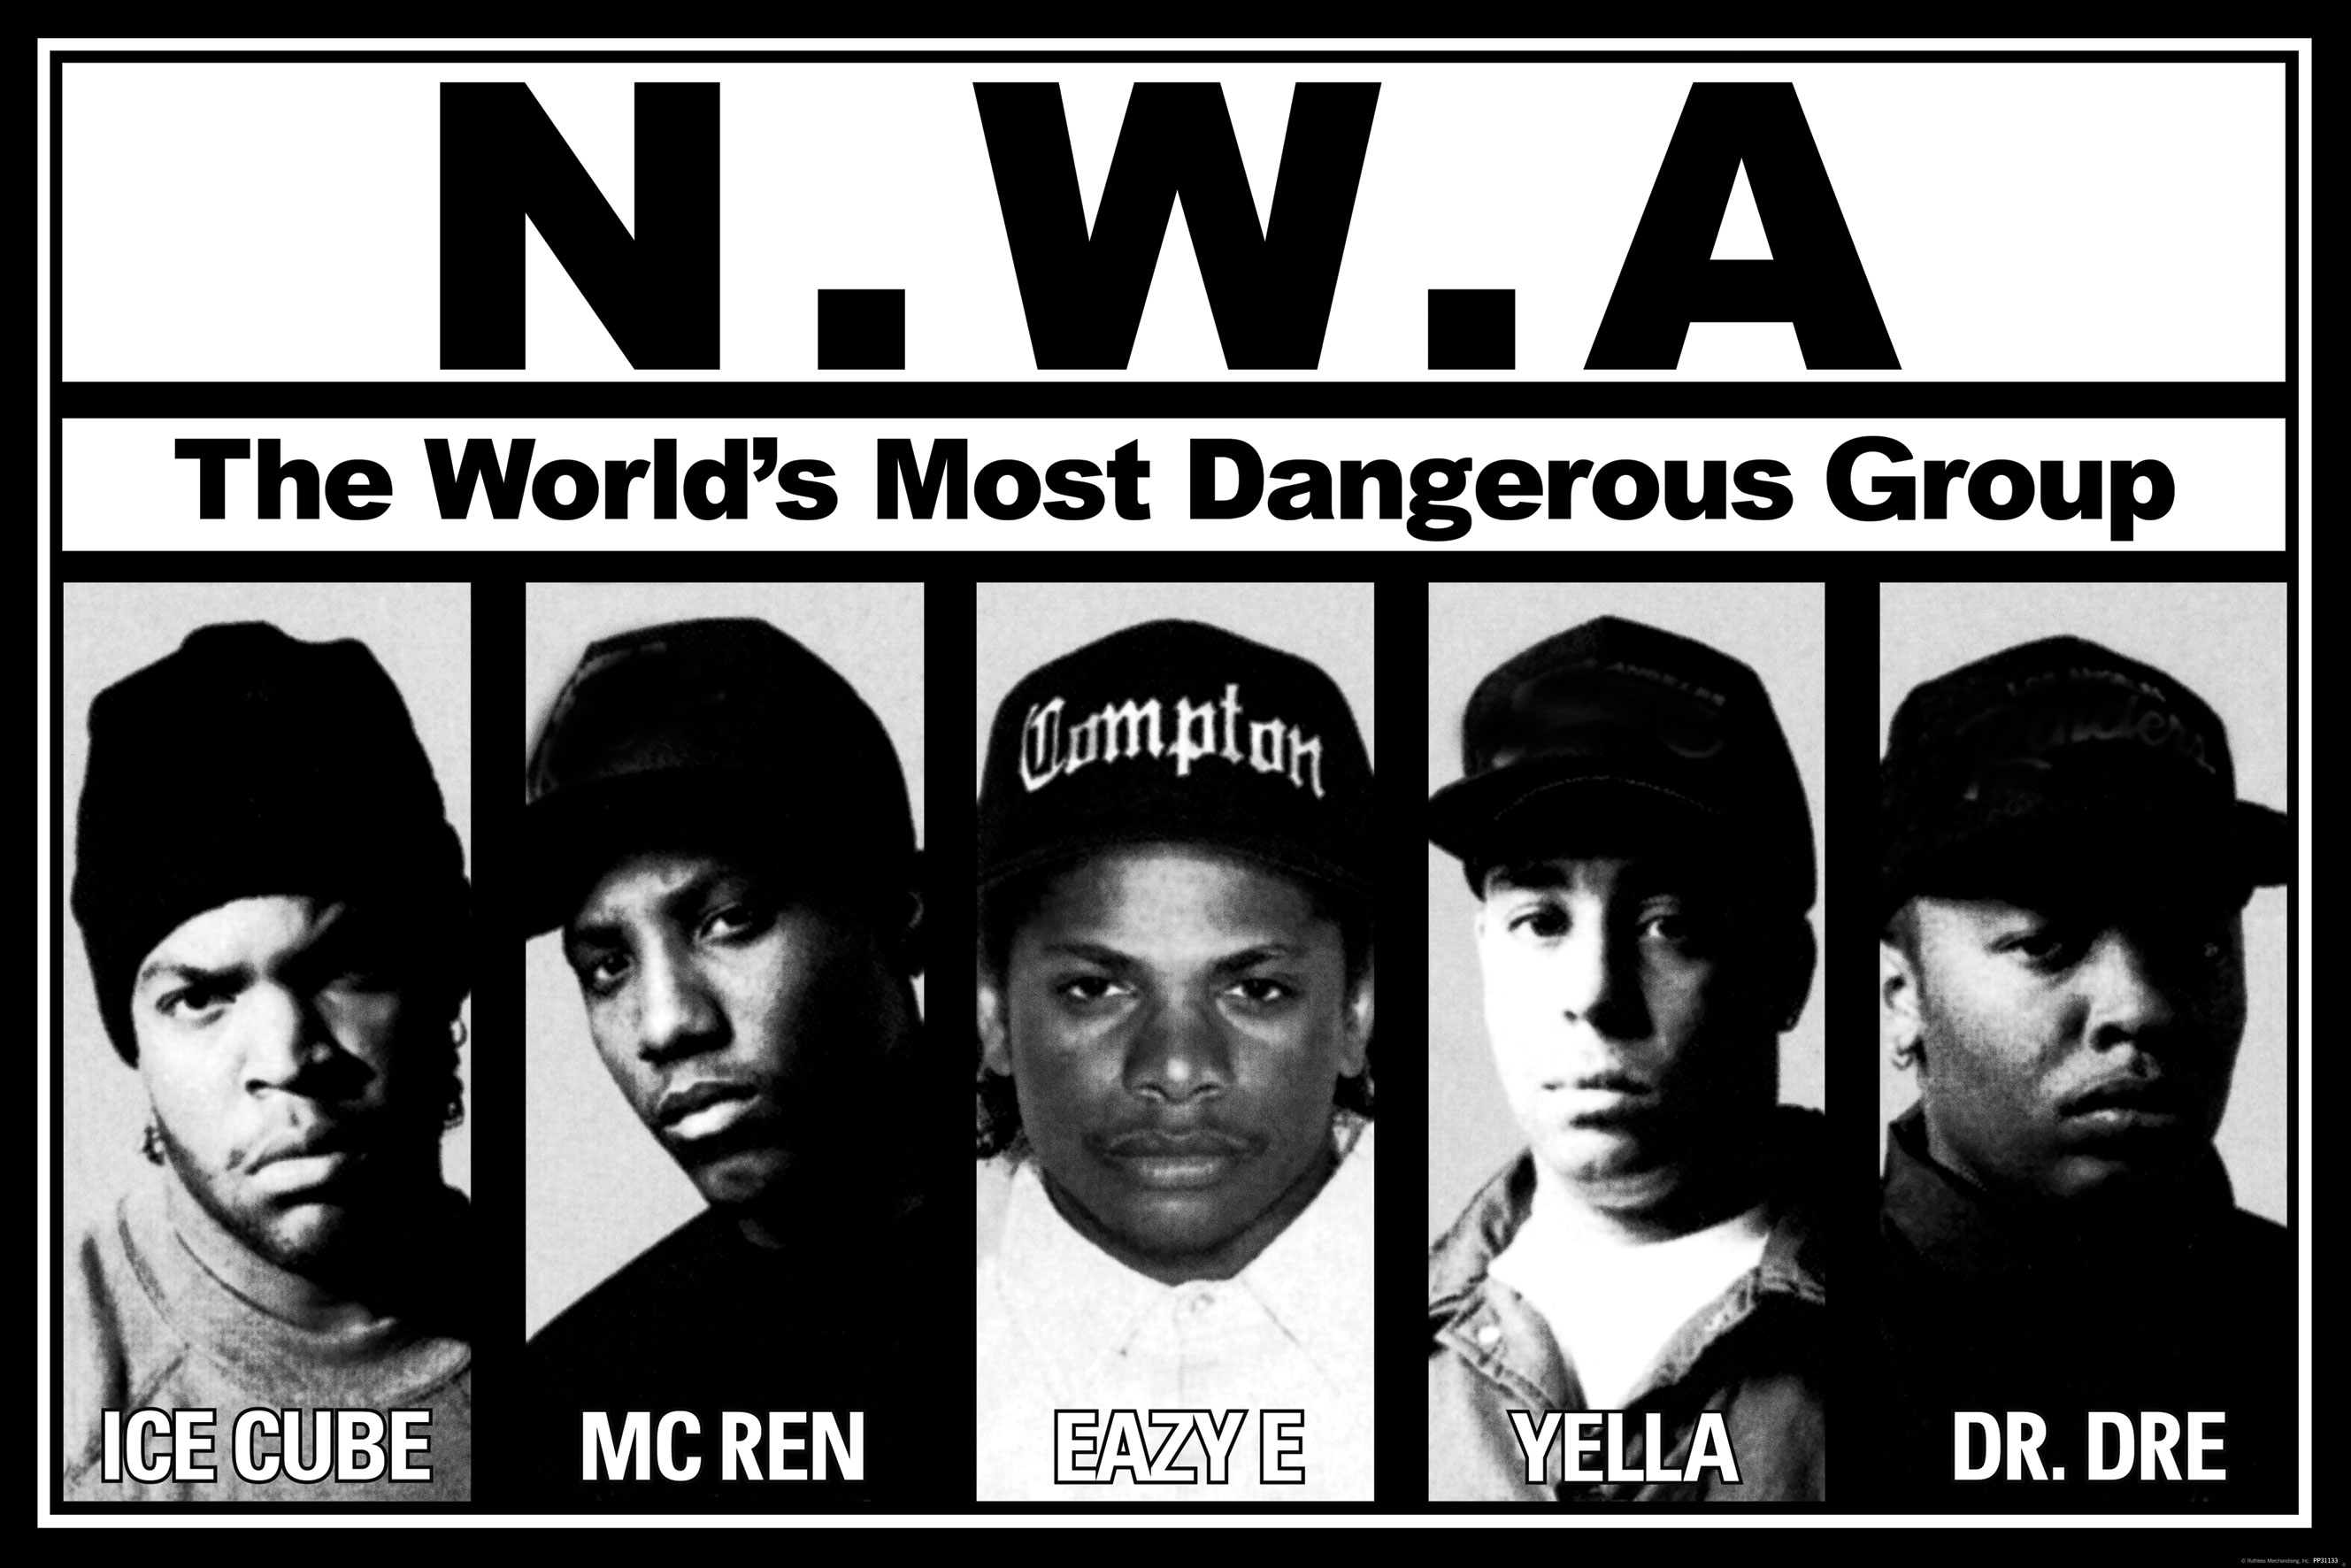 Ice Cube Cover Photo Complete ice cube's son to star in n.w.a. biopic straight outta compton - /film